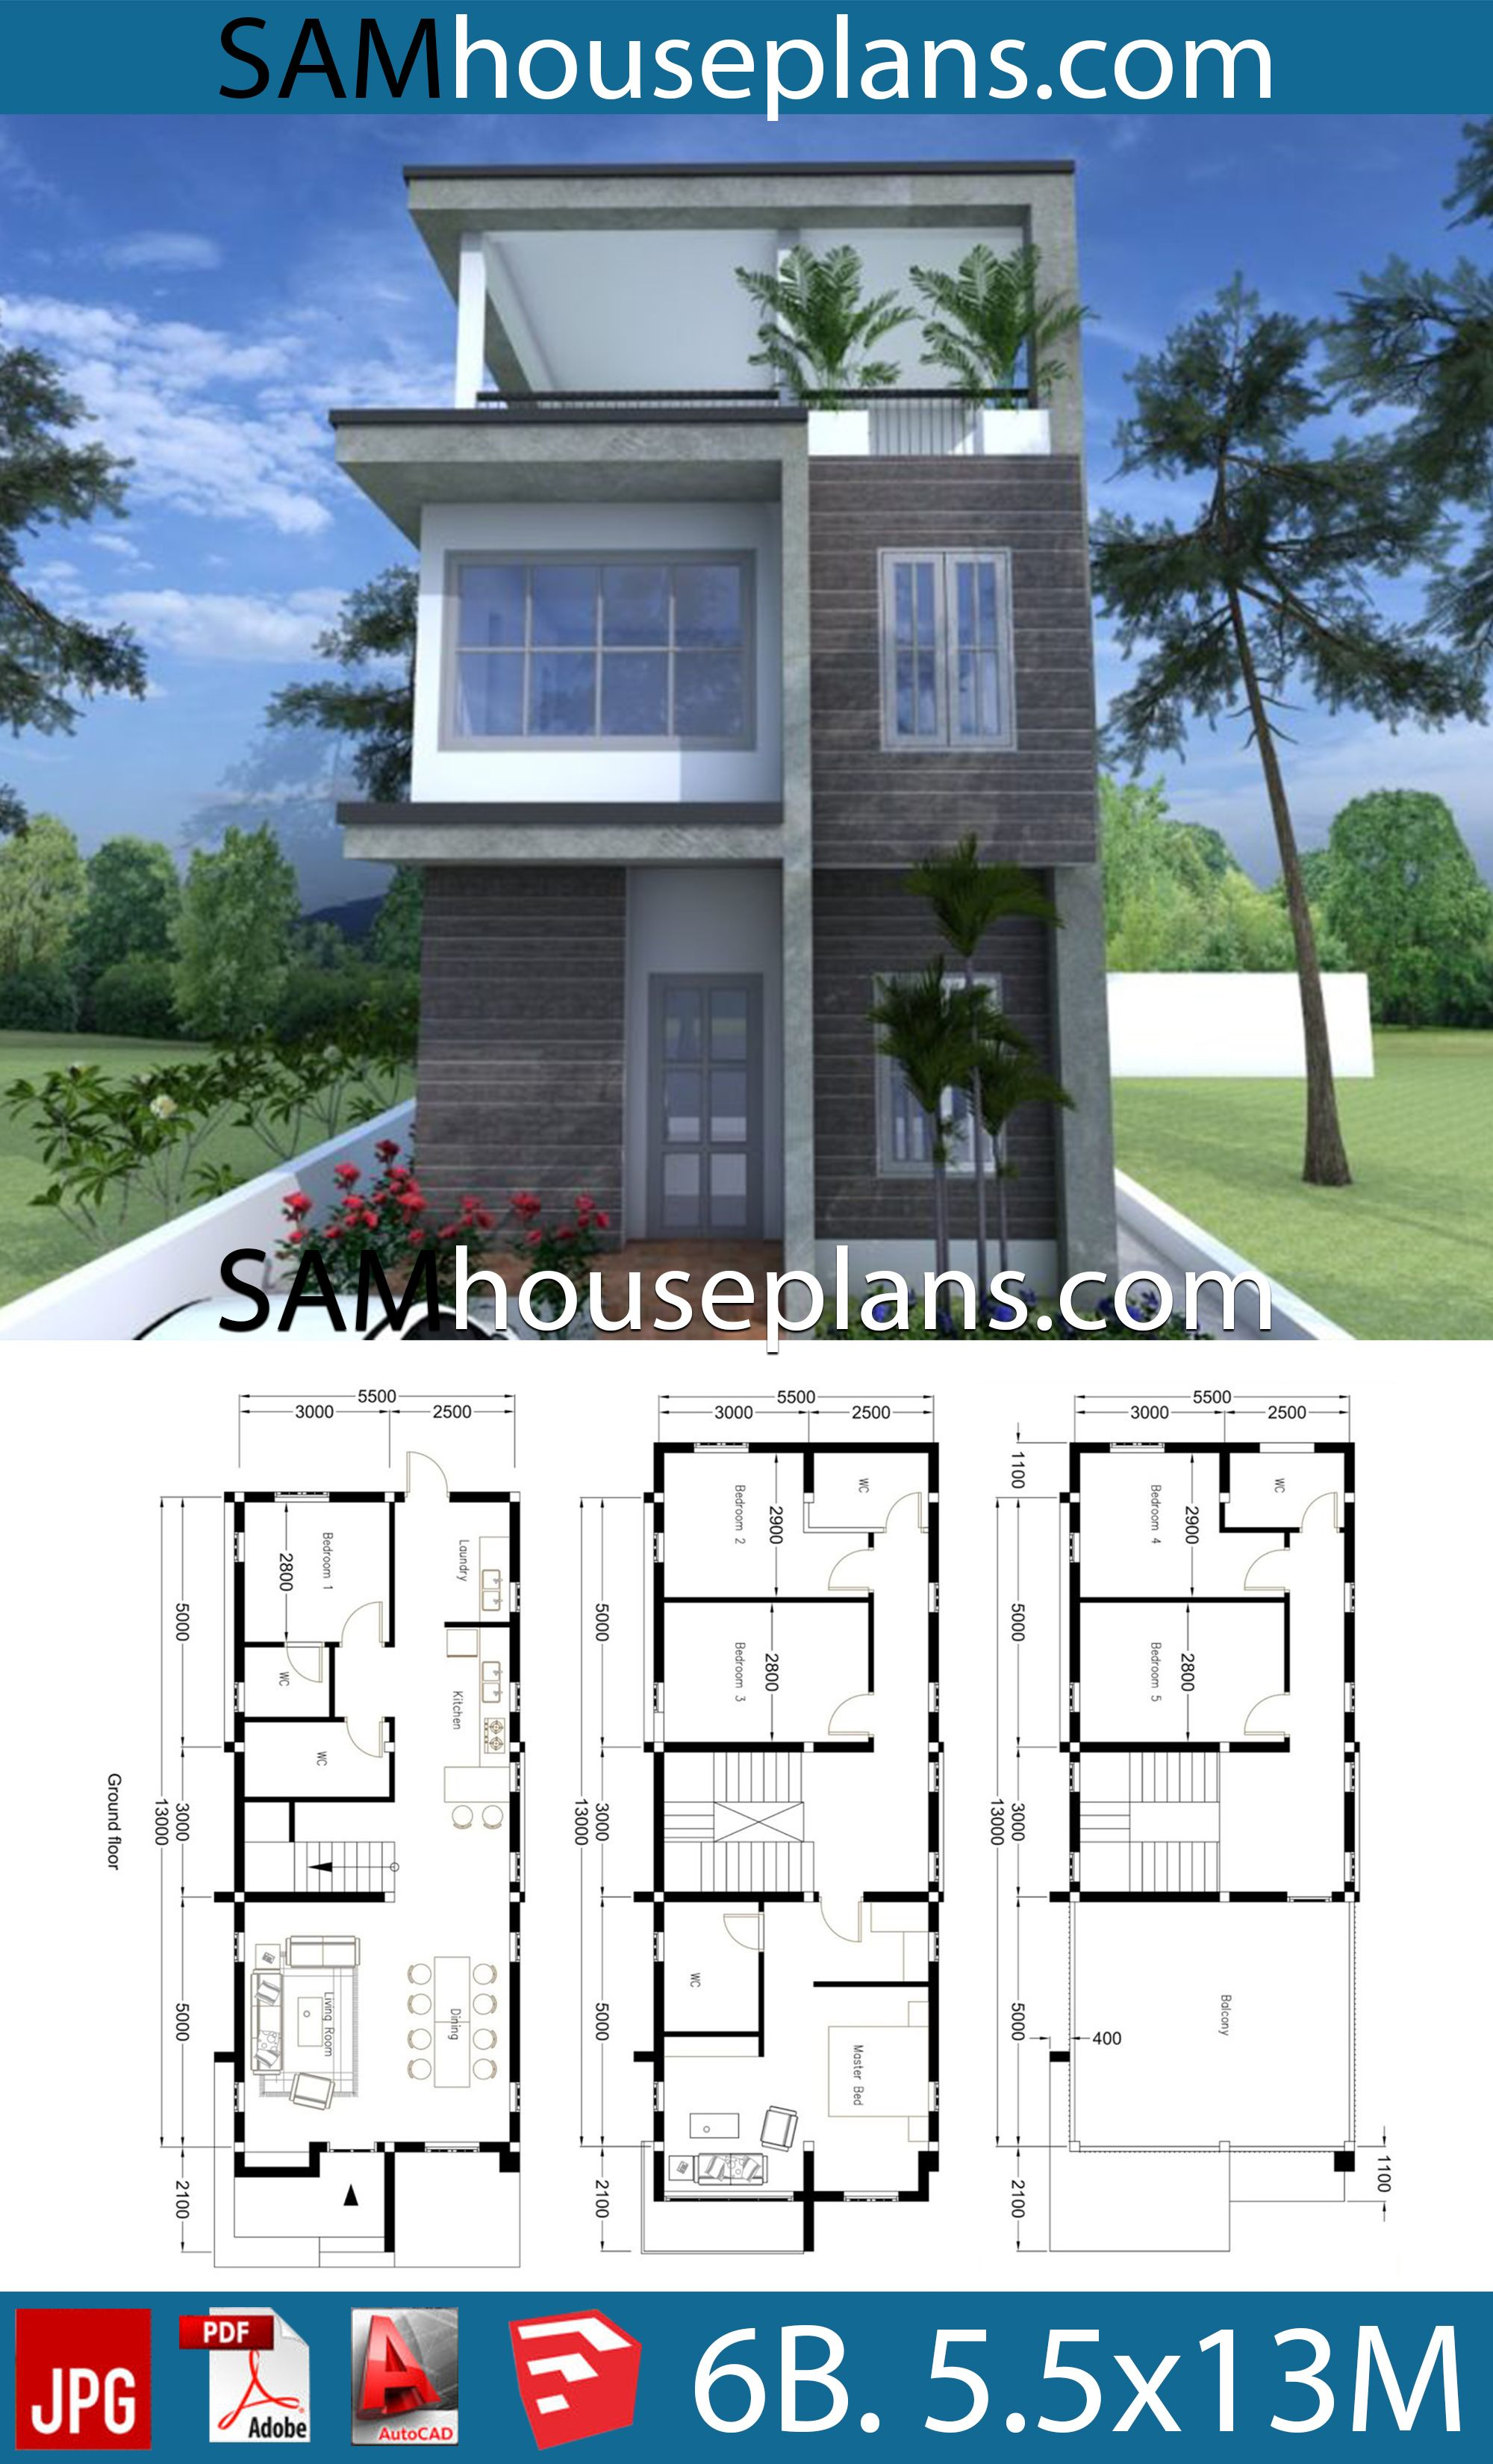 House Plans 5 5x13 With 6 Bedrooms Sam House Plans Architectural House Plans Model House Plan House Plans